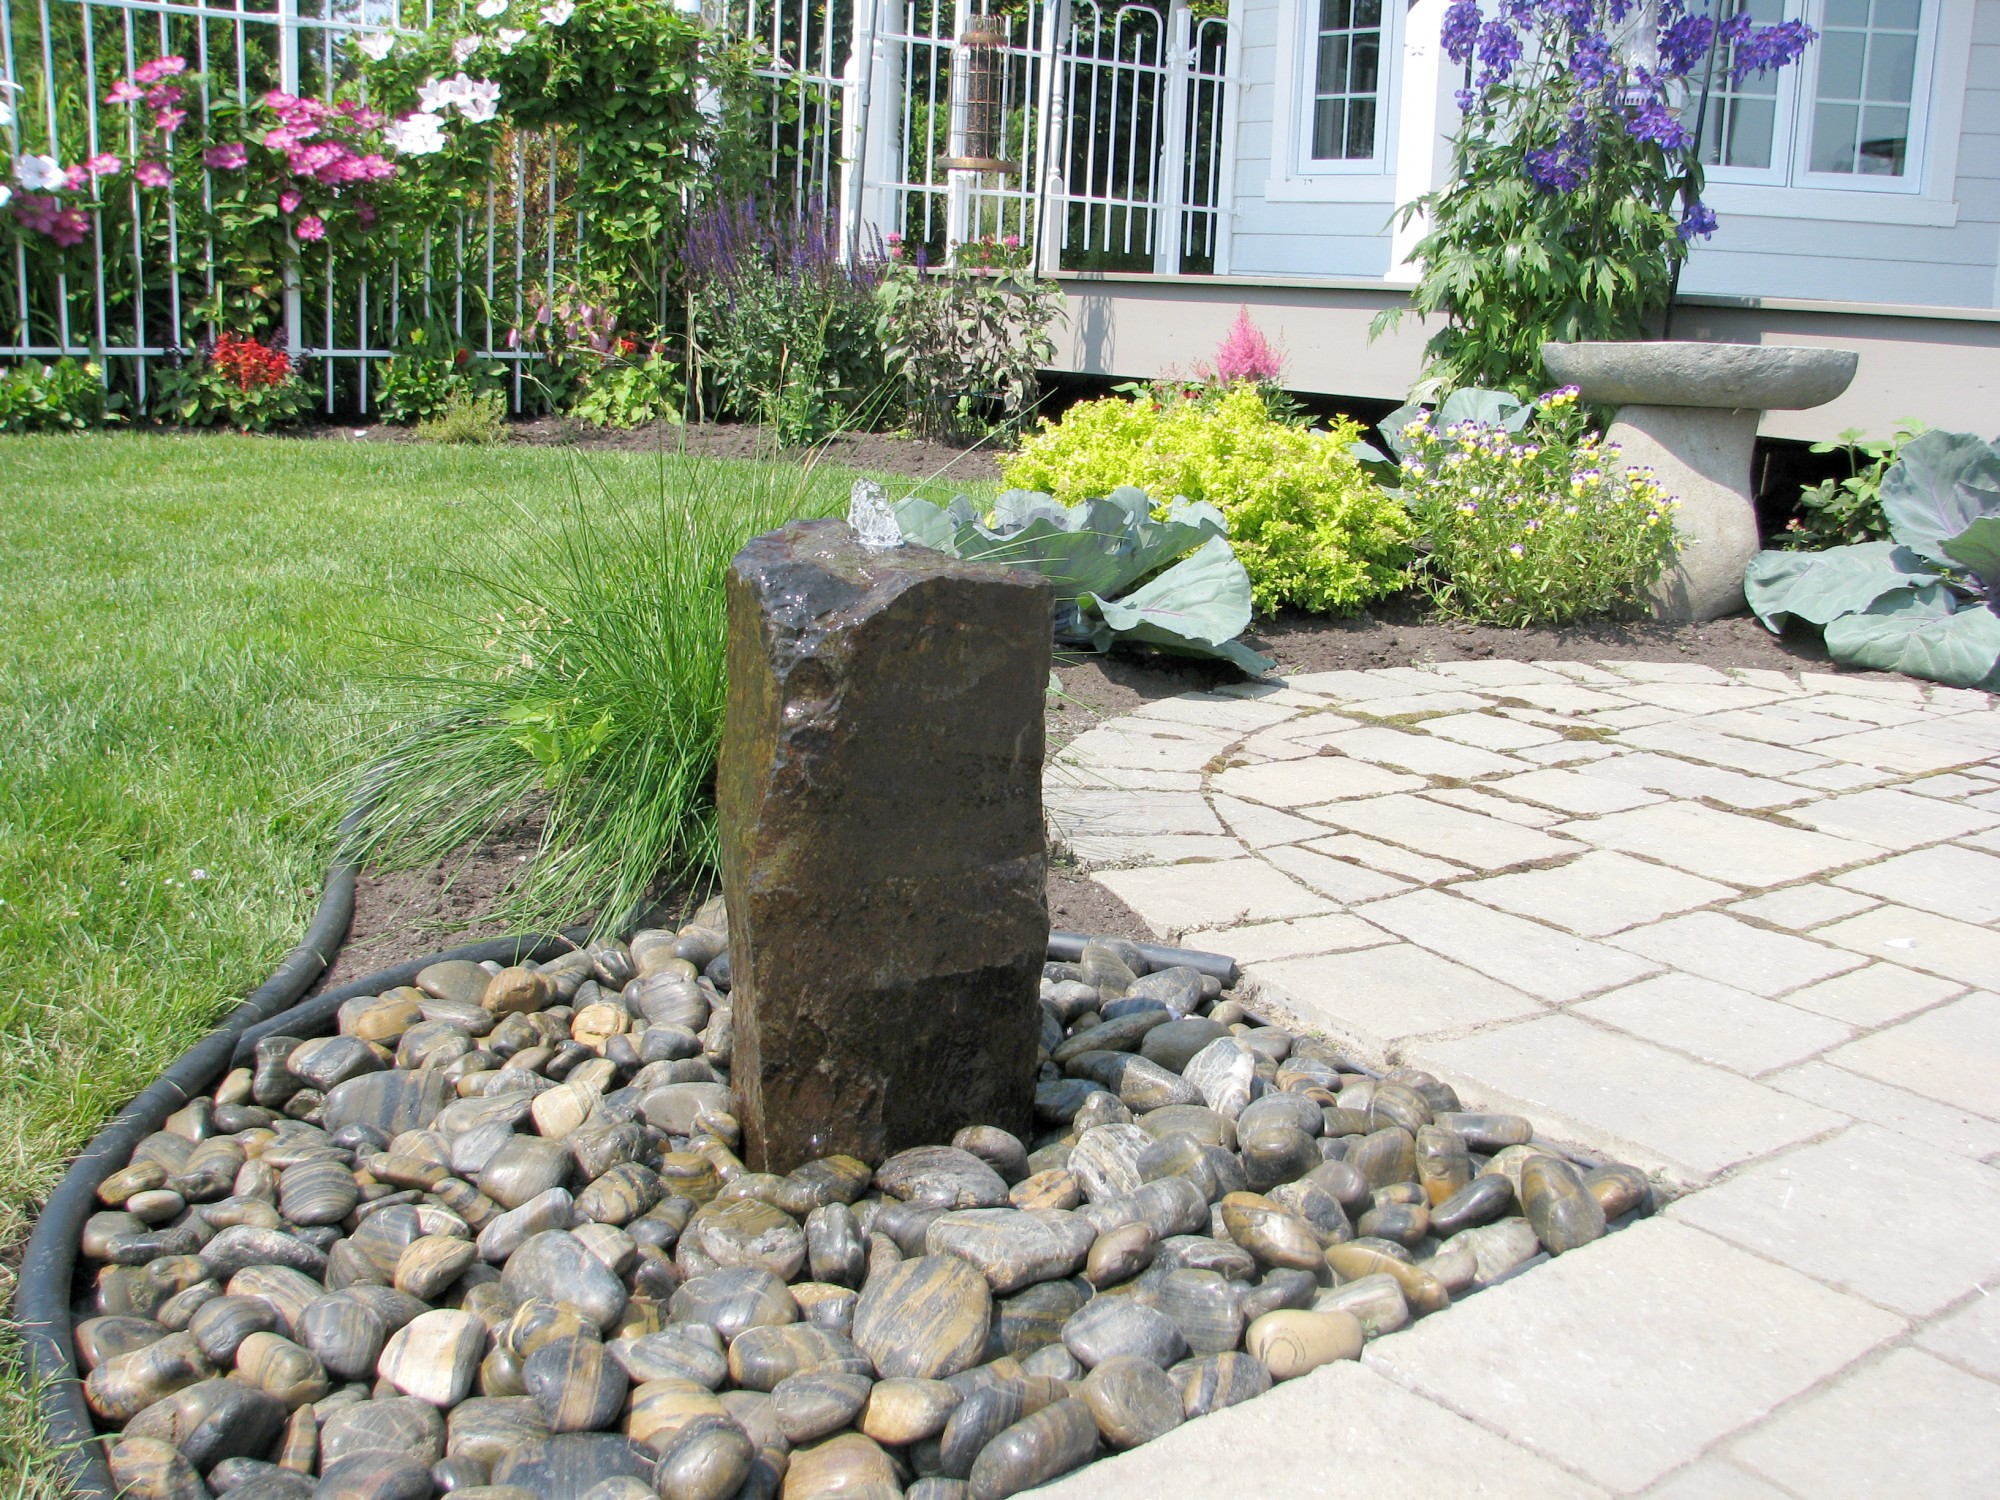 Basalt Fountain Kits Include Everything You Need To Create A Beautiful  One Of A Kind Natural Stone Fountain: The Drilled Basalt Boulder, Plastic  Basin, ...